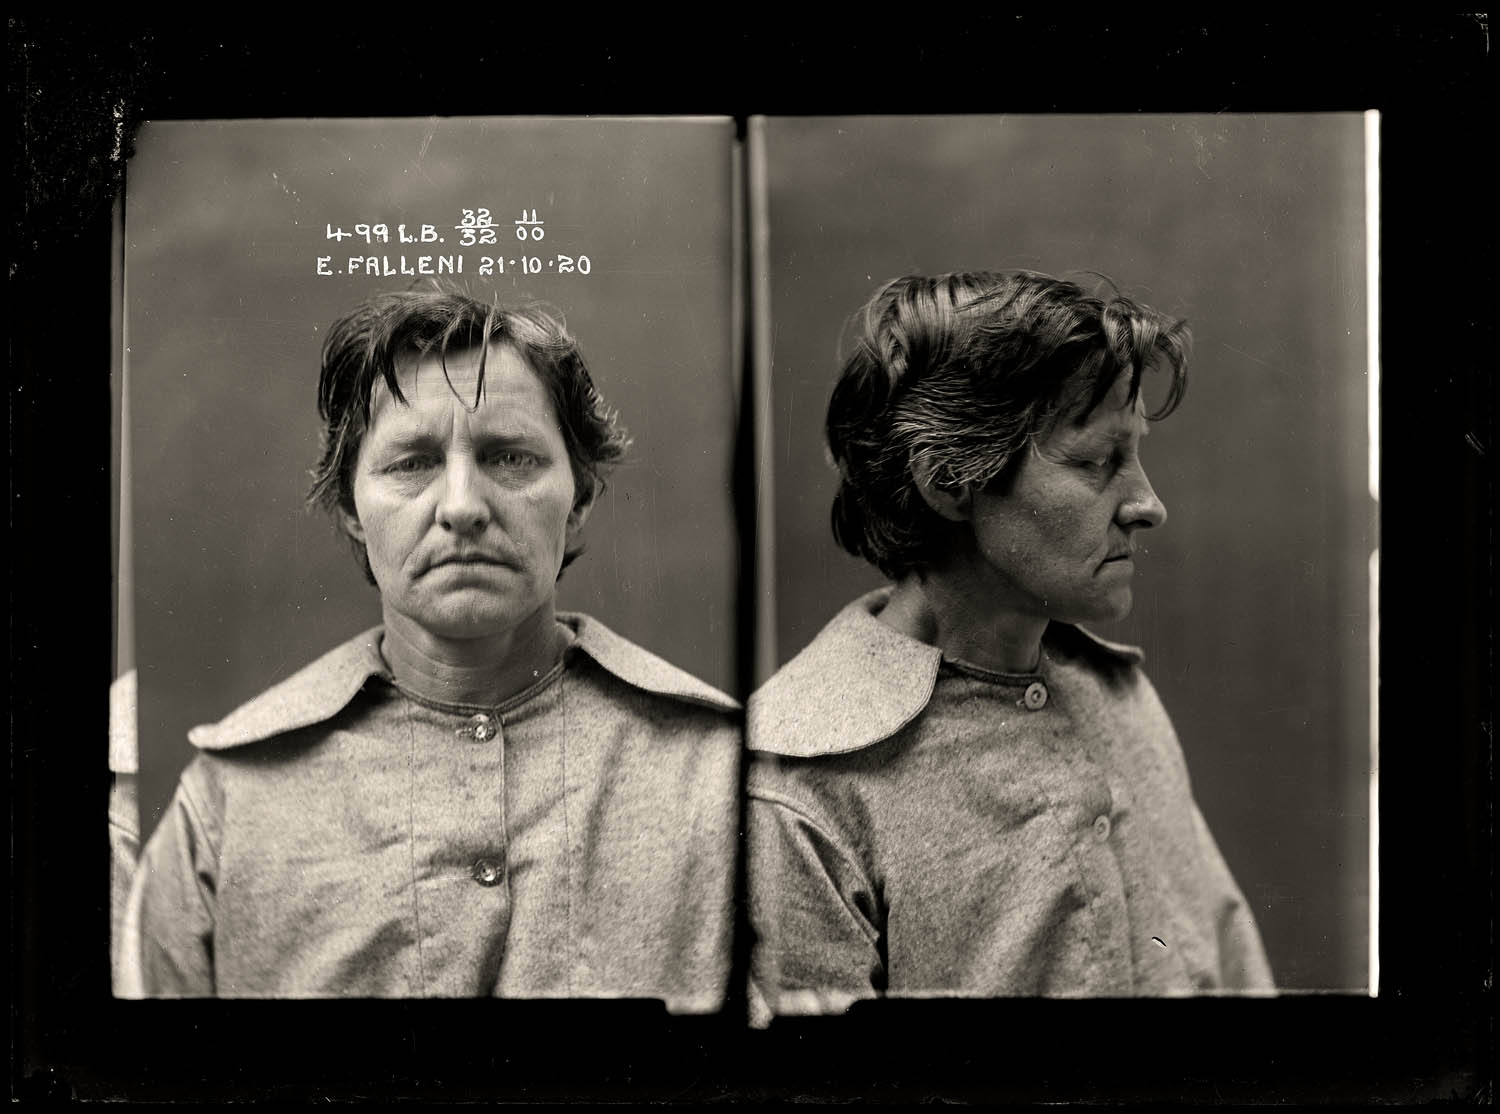 Eugenia Falleni, alias Harry Crawford, criminal record number 499LB, 21 